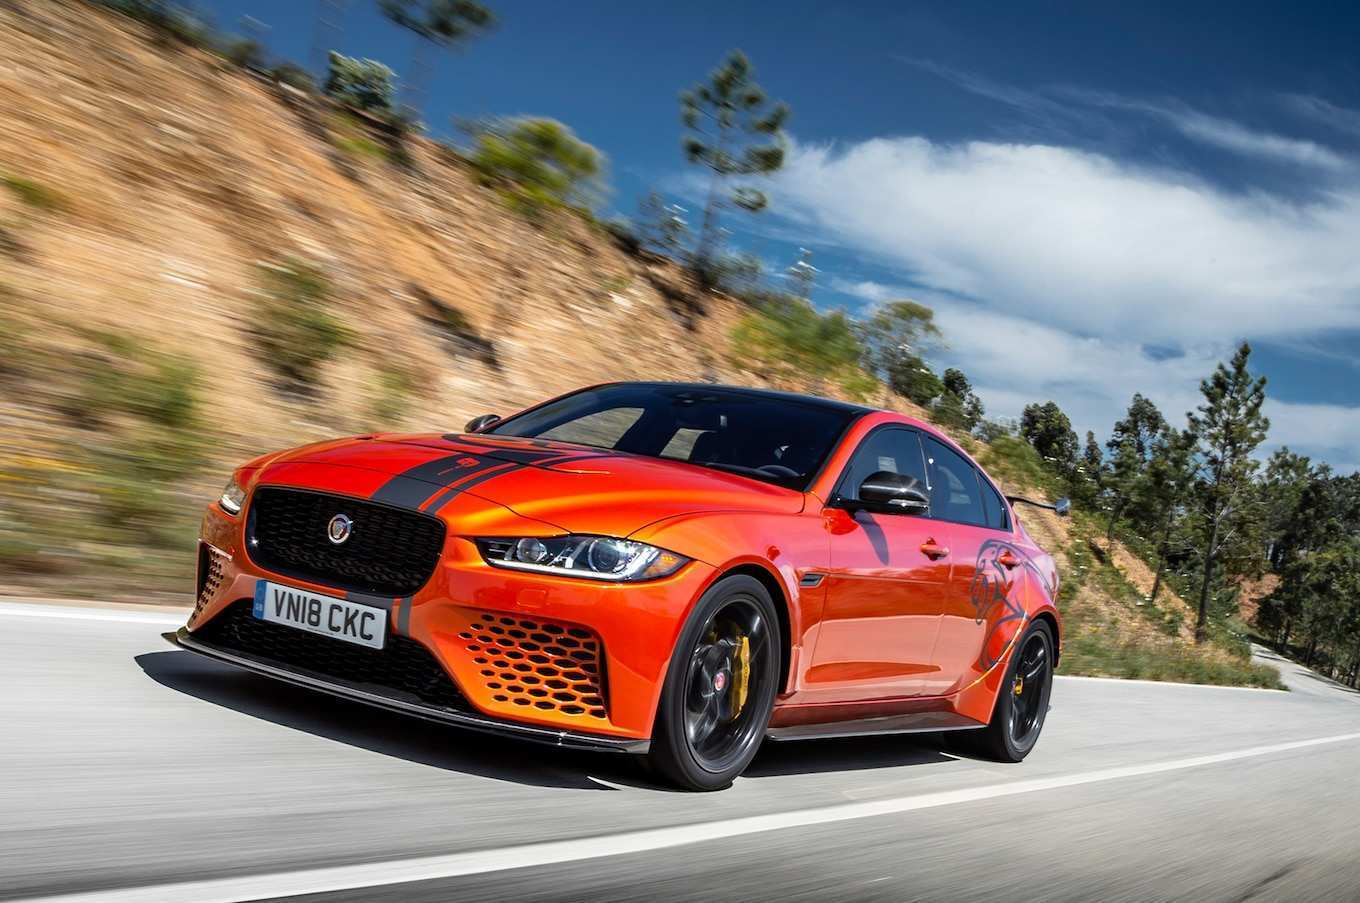 82 The Best 2019 Jaguar Project 8 Spy Shoot